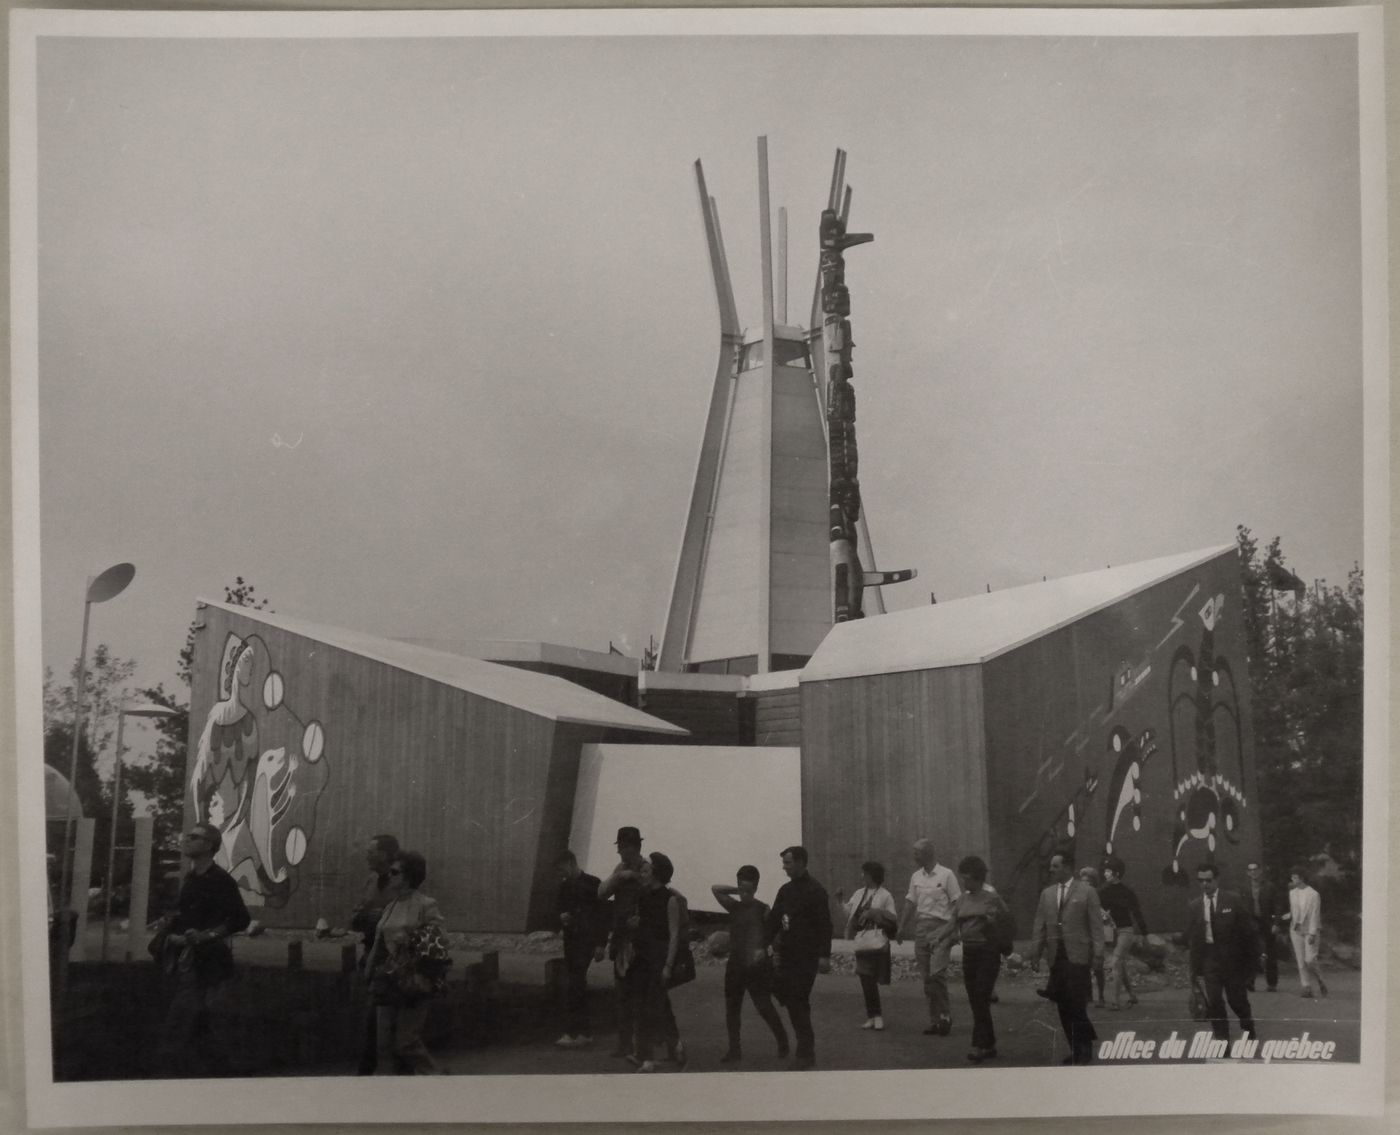 View of the Indians of Canada Pavilion with the Totem Kwakiutl created by Tony and Henry Hunt, Expo 67, Montréal, Québec